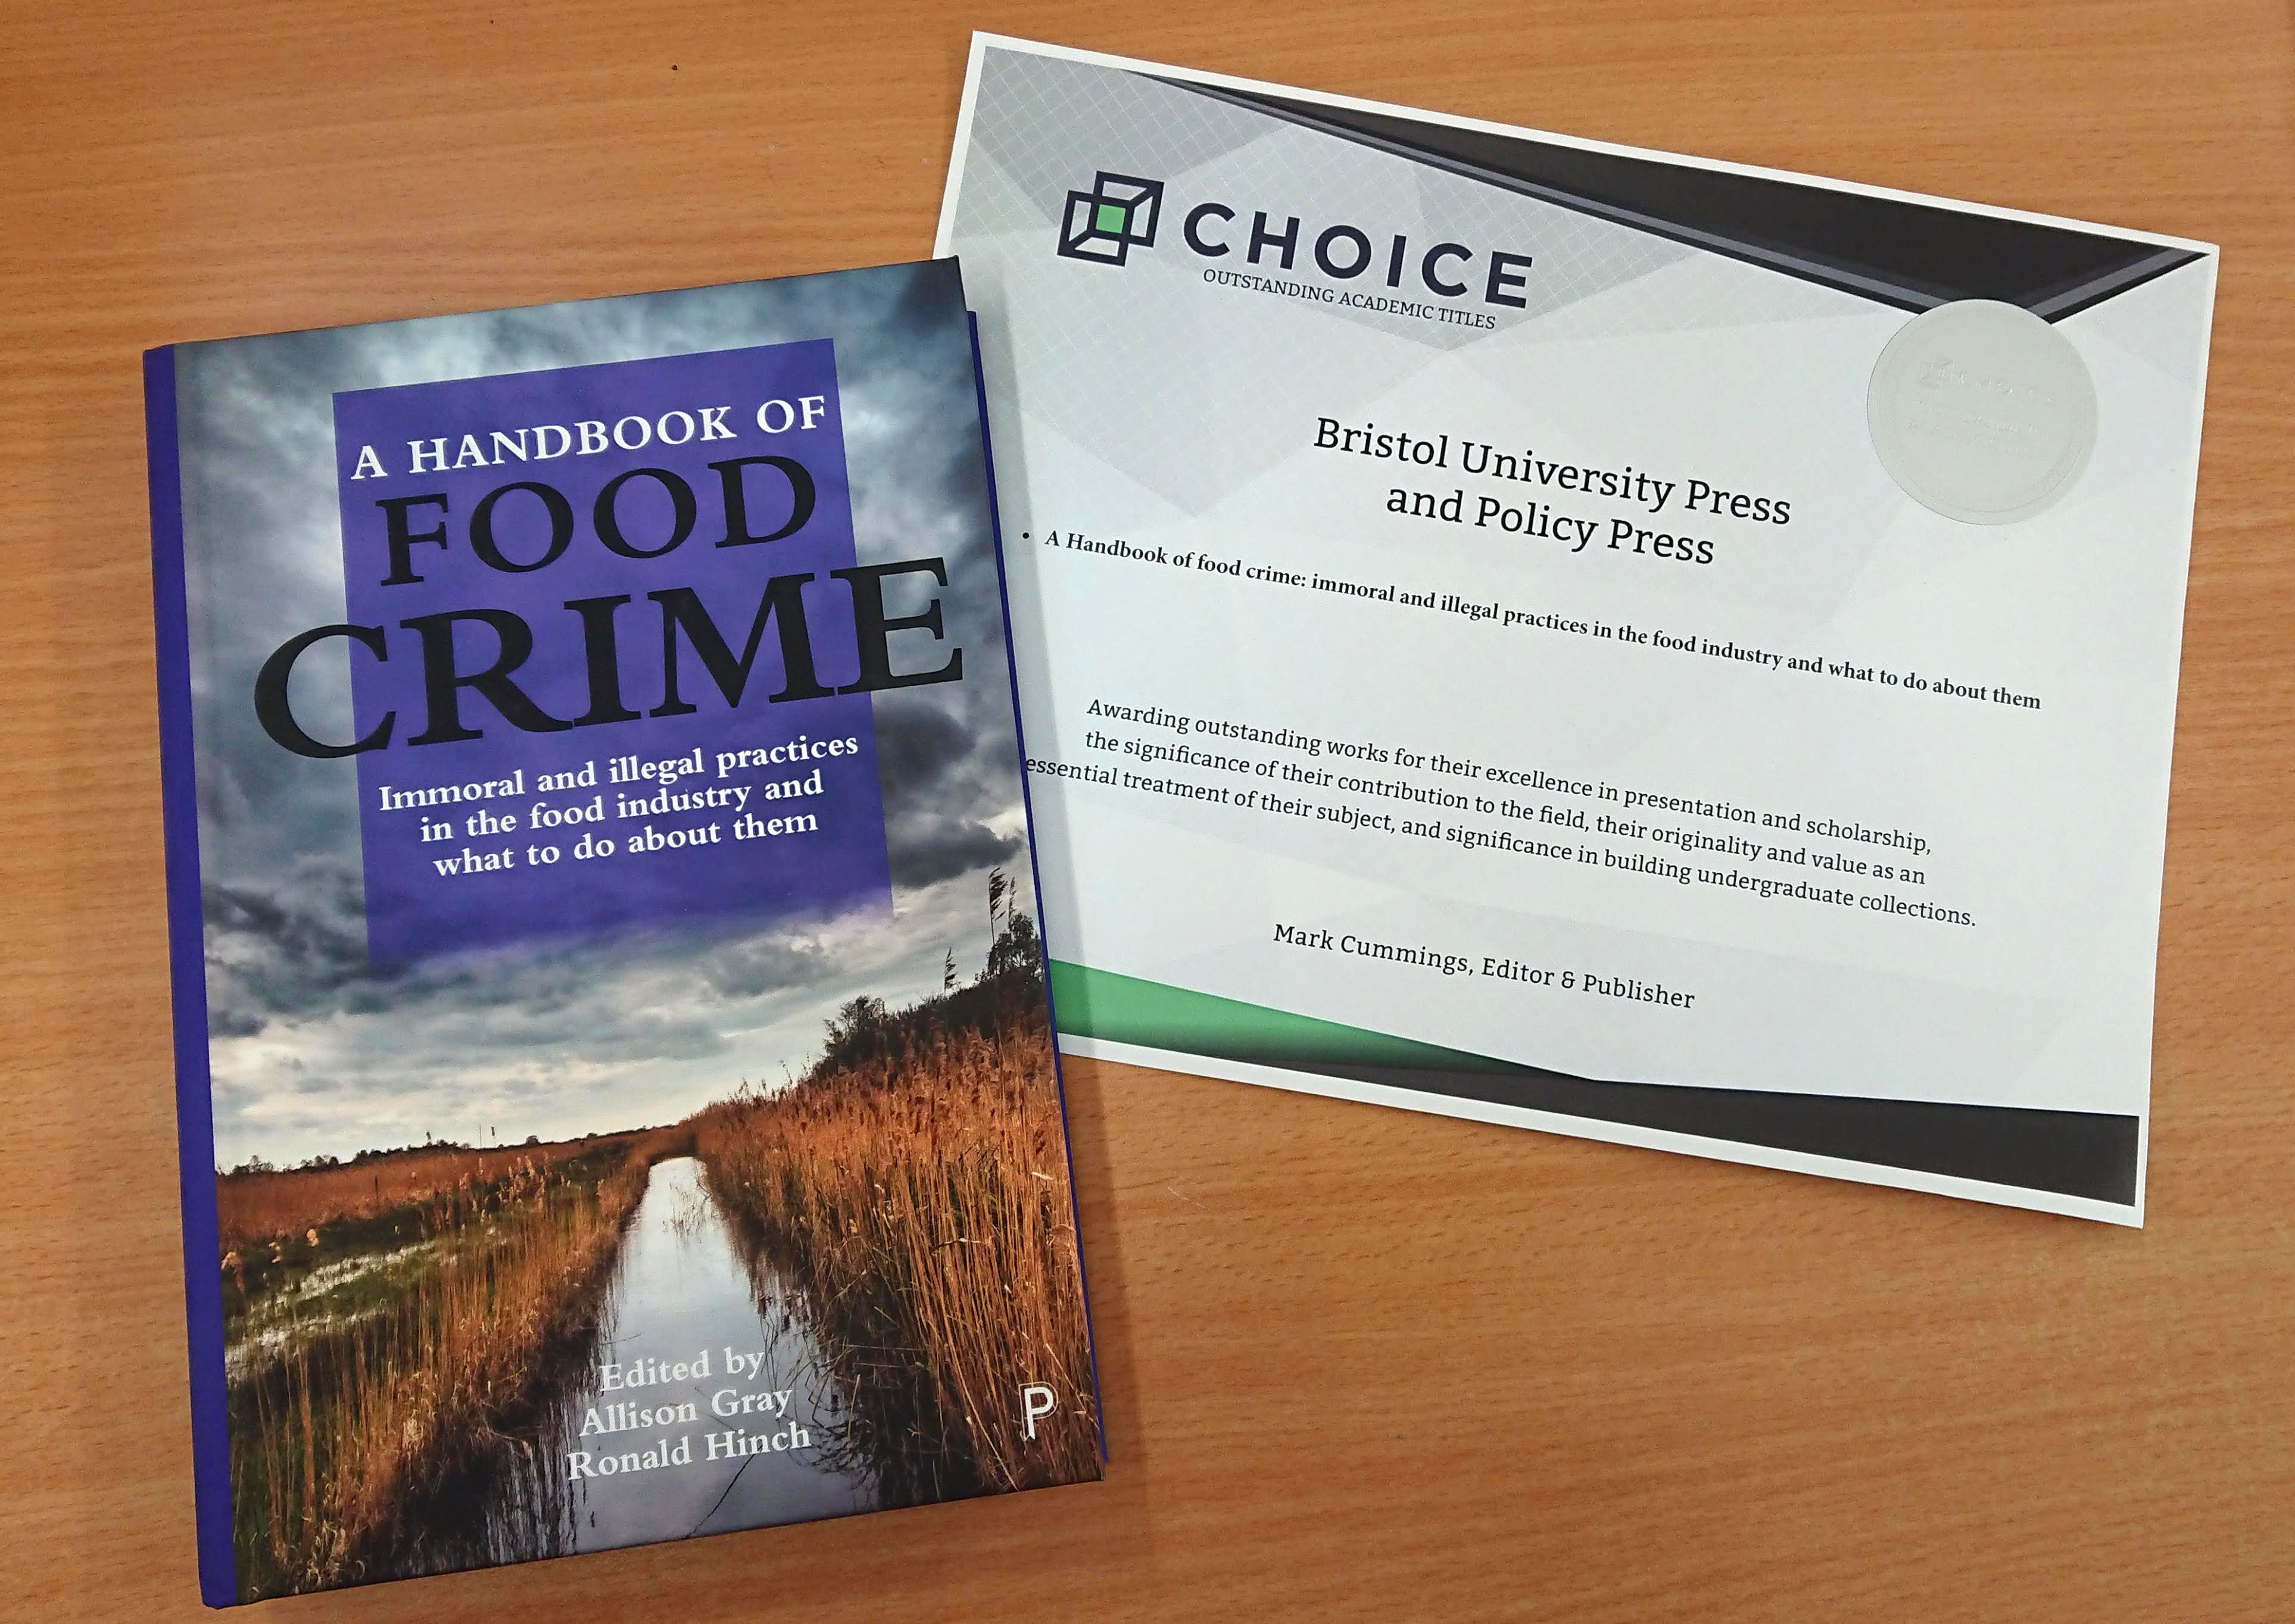 The handbook of food crime wins Choice Outstanding Academic Title award